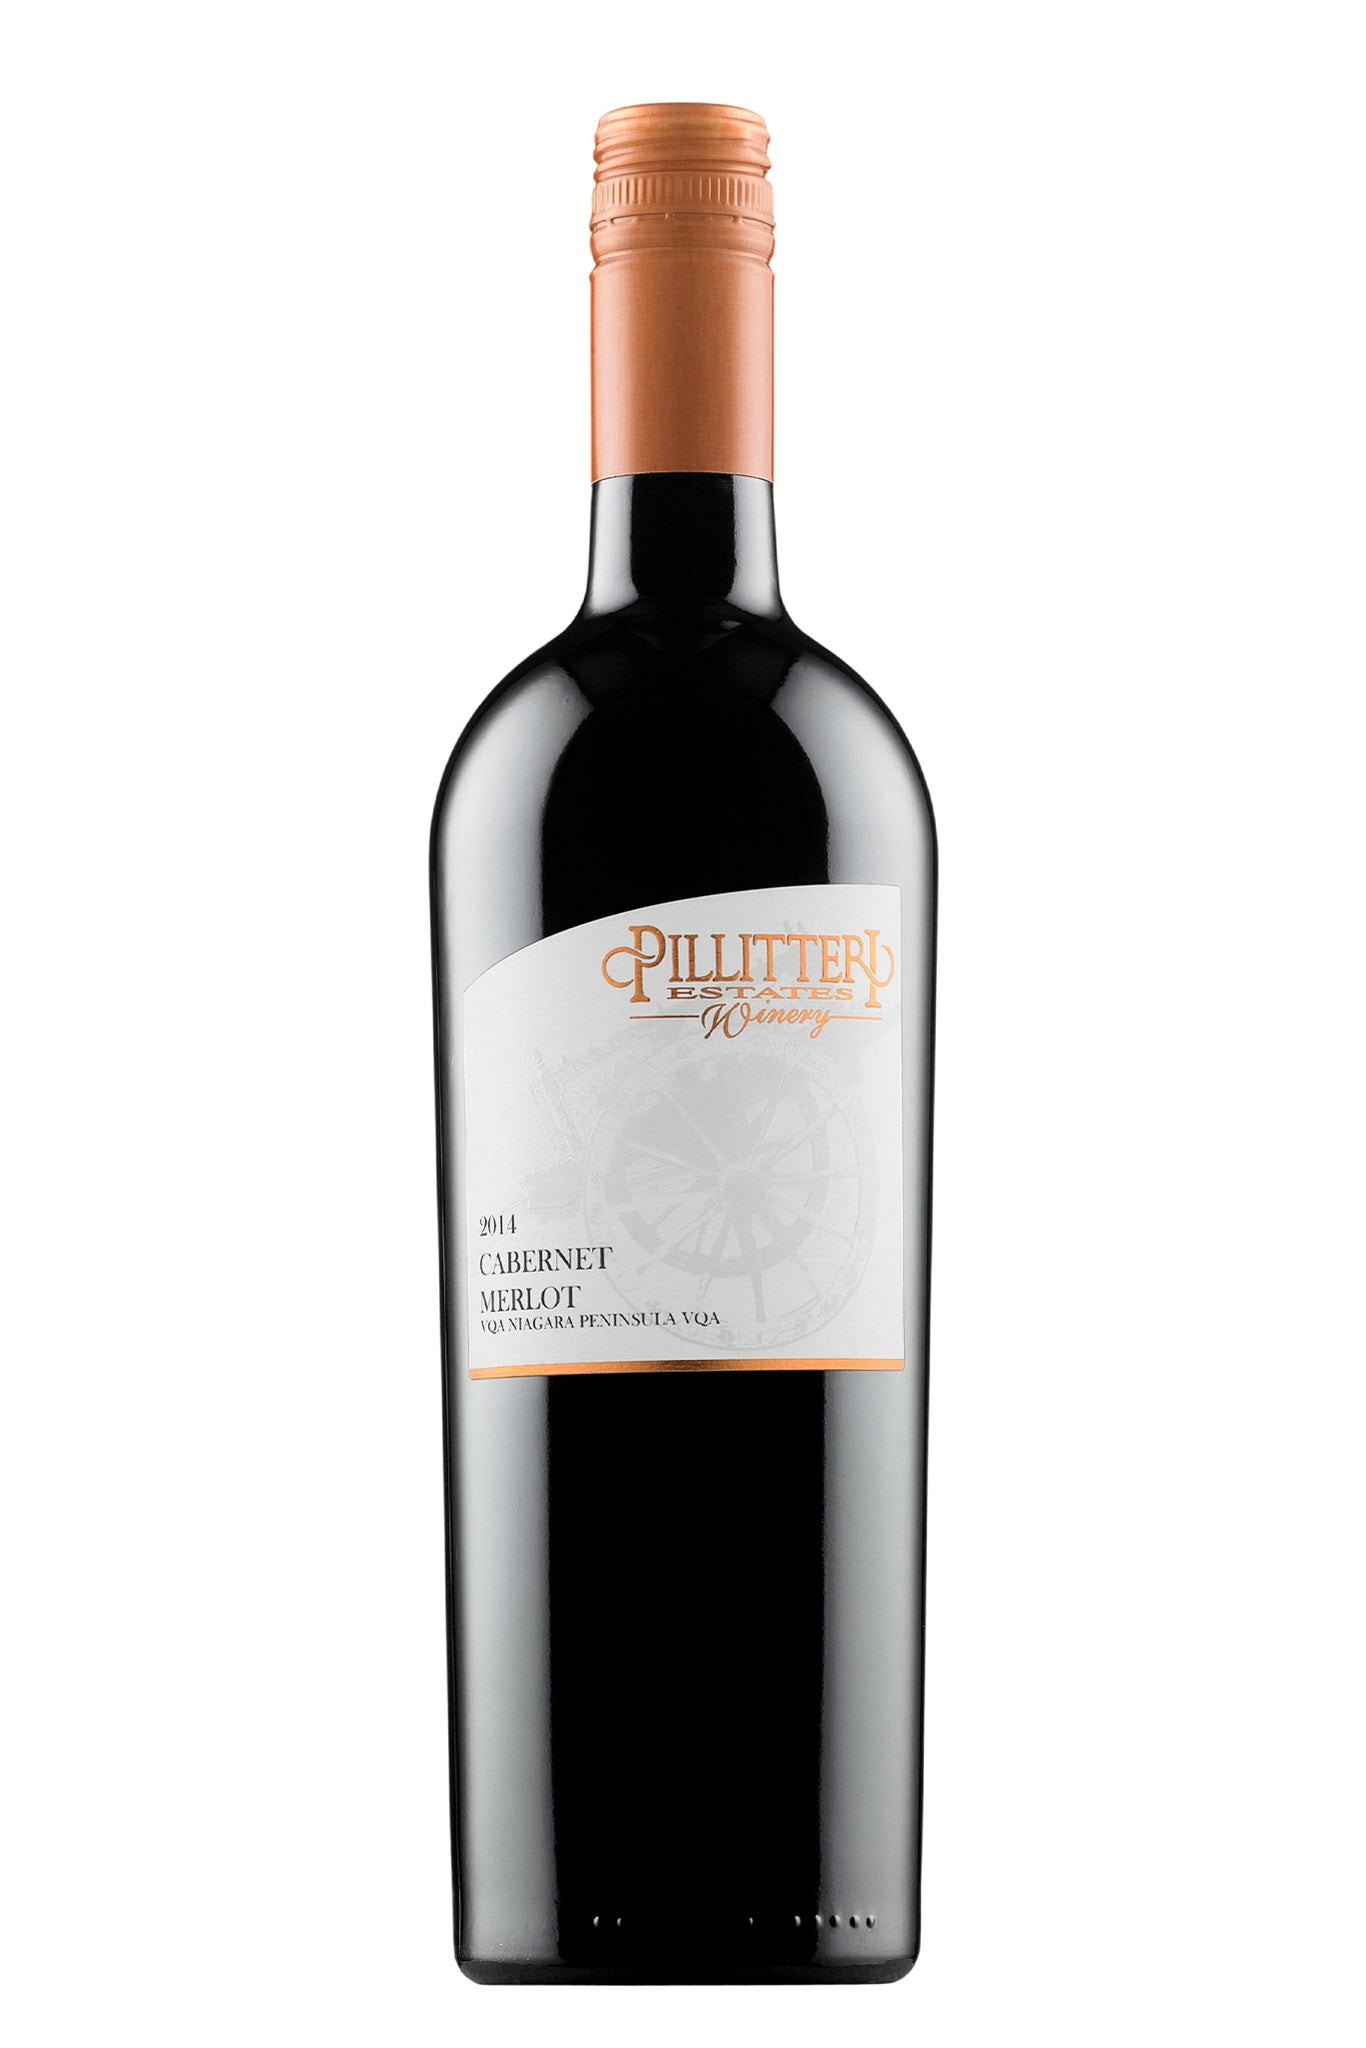 Pillitteri Estates Winery Cabernet / Merlot 2014 • Rotwein • Kanada • Niagara on the Lake • 750 ml